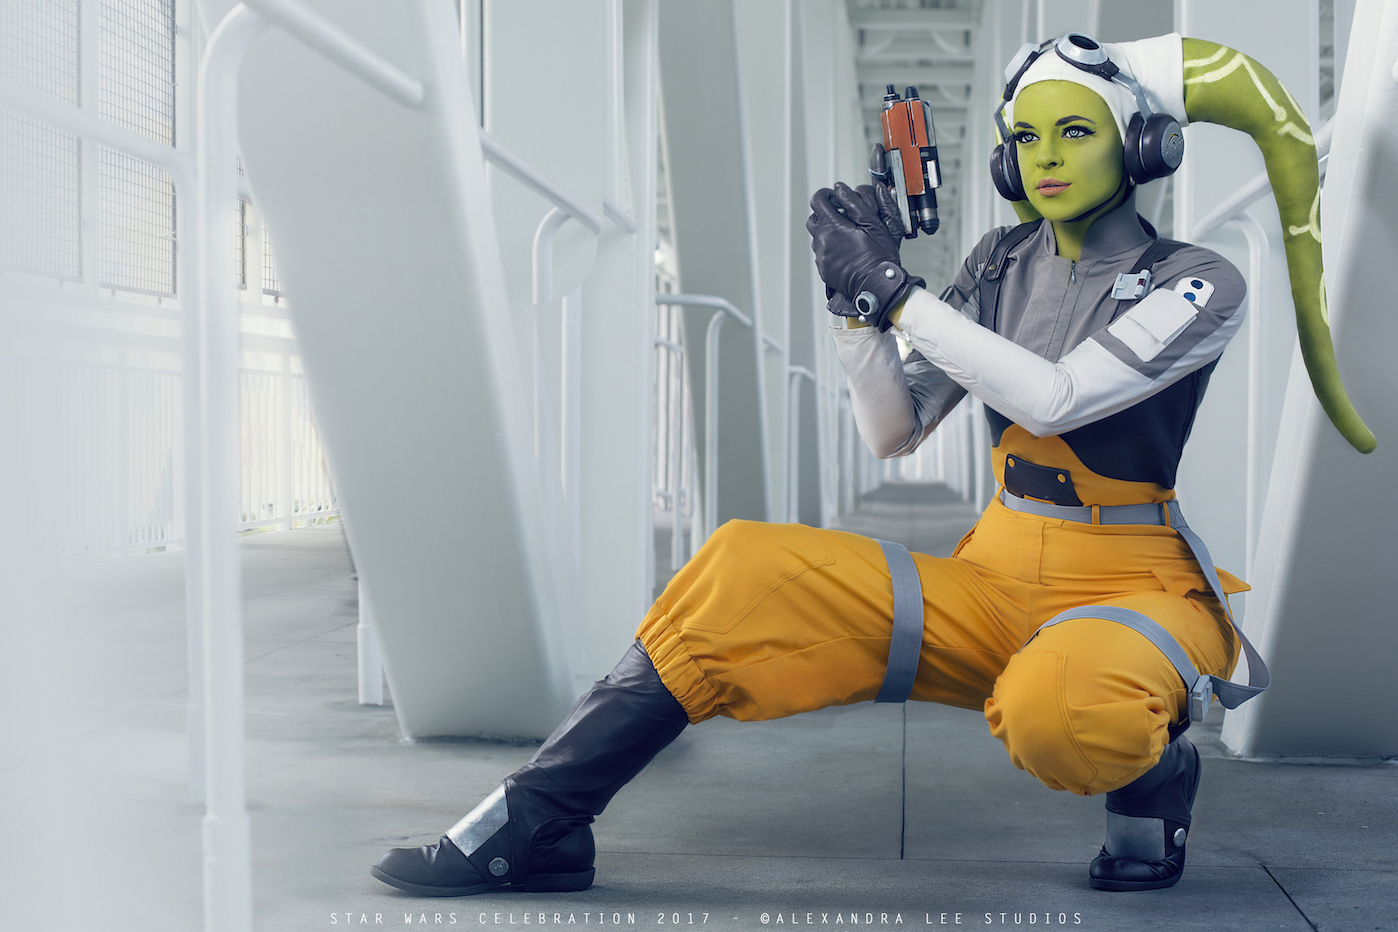 Interview with a Twi'Lek